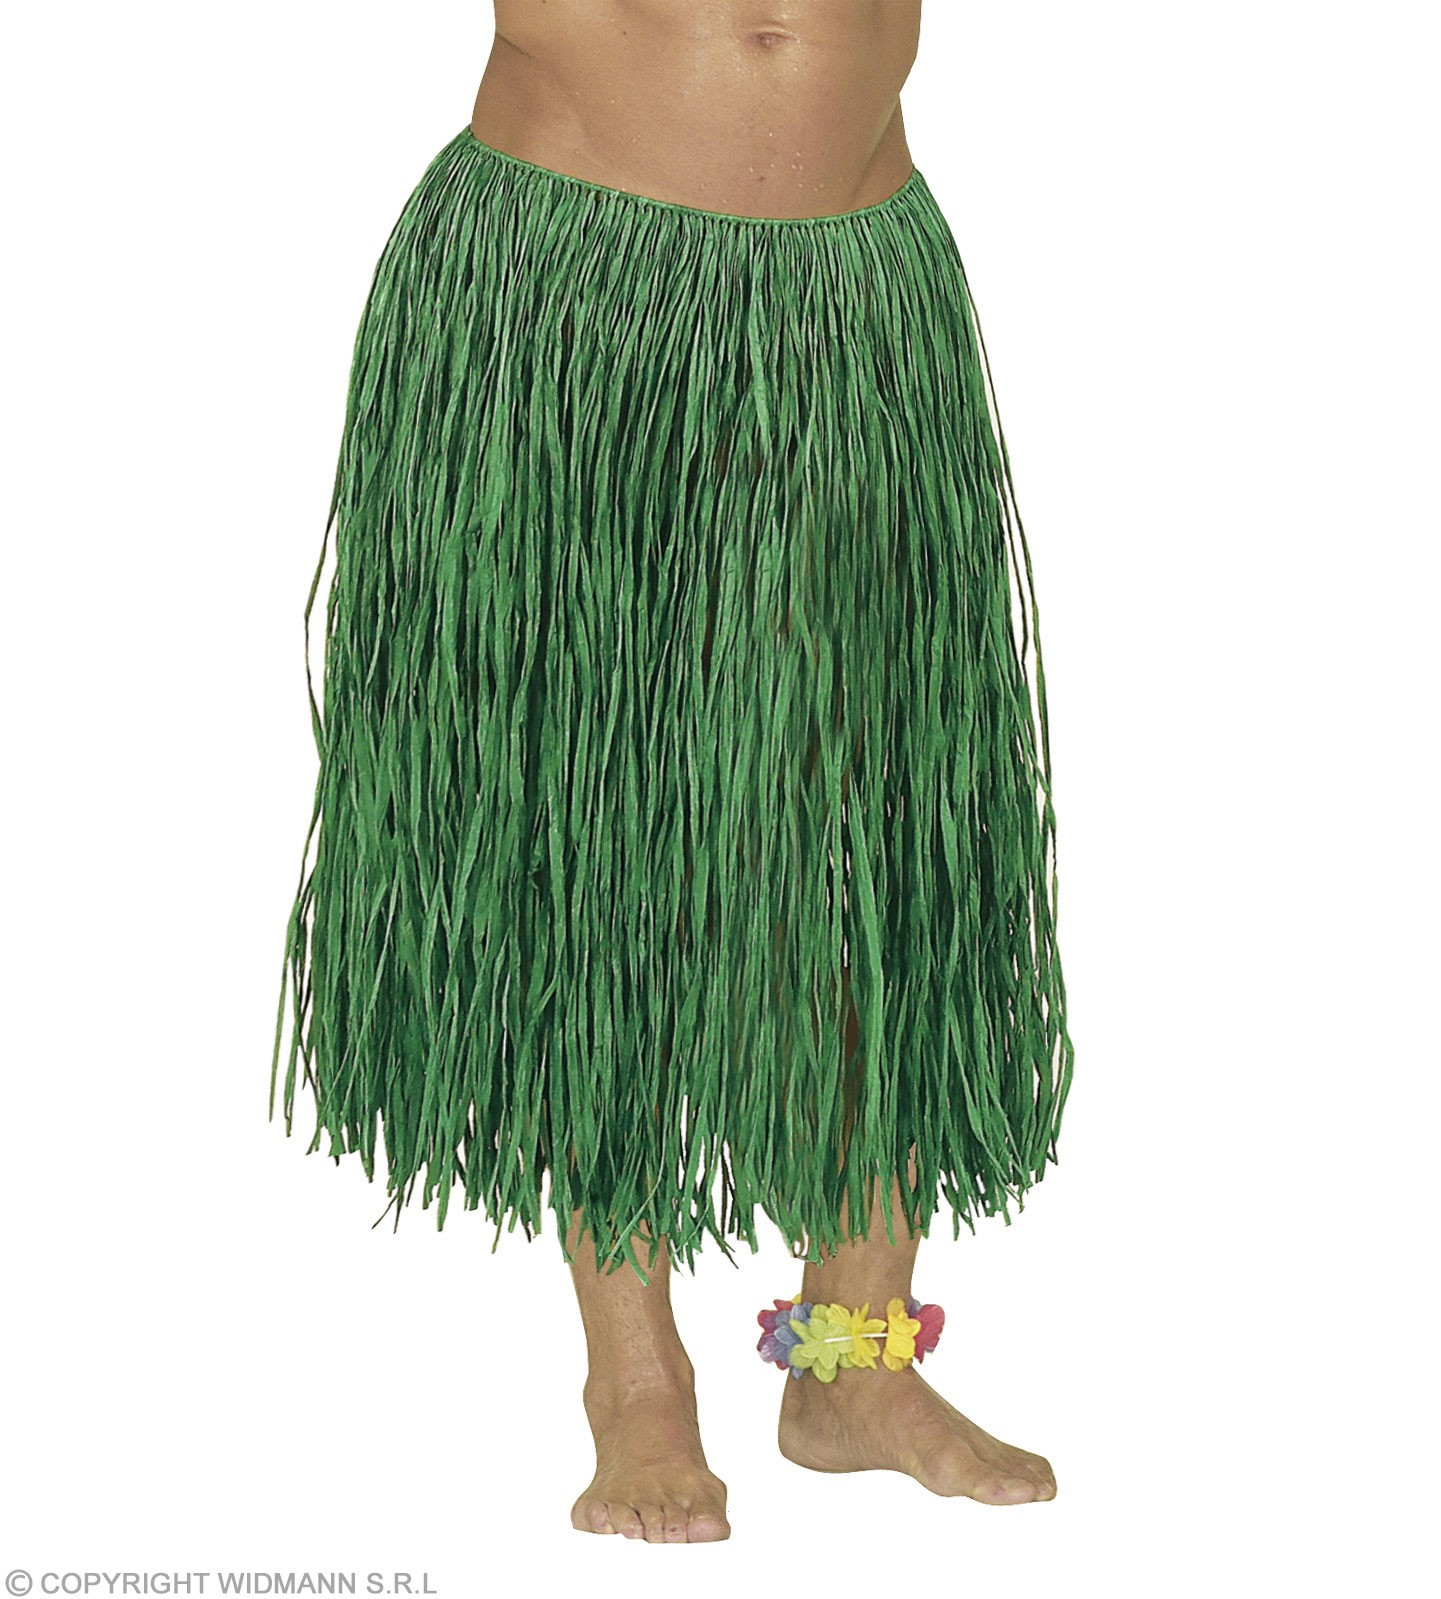 Raffia Hawaiian Skirt Green Colour 78Cm - Fancy Dress (Hawaiian)